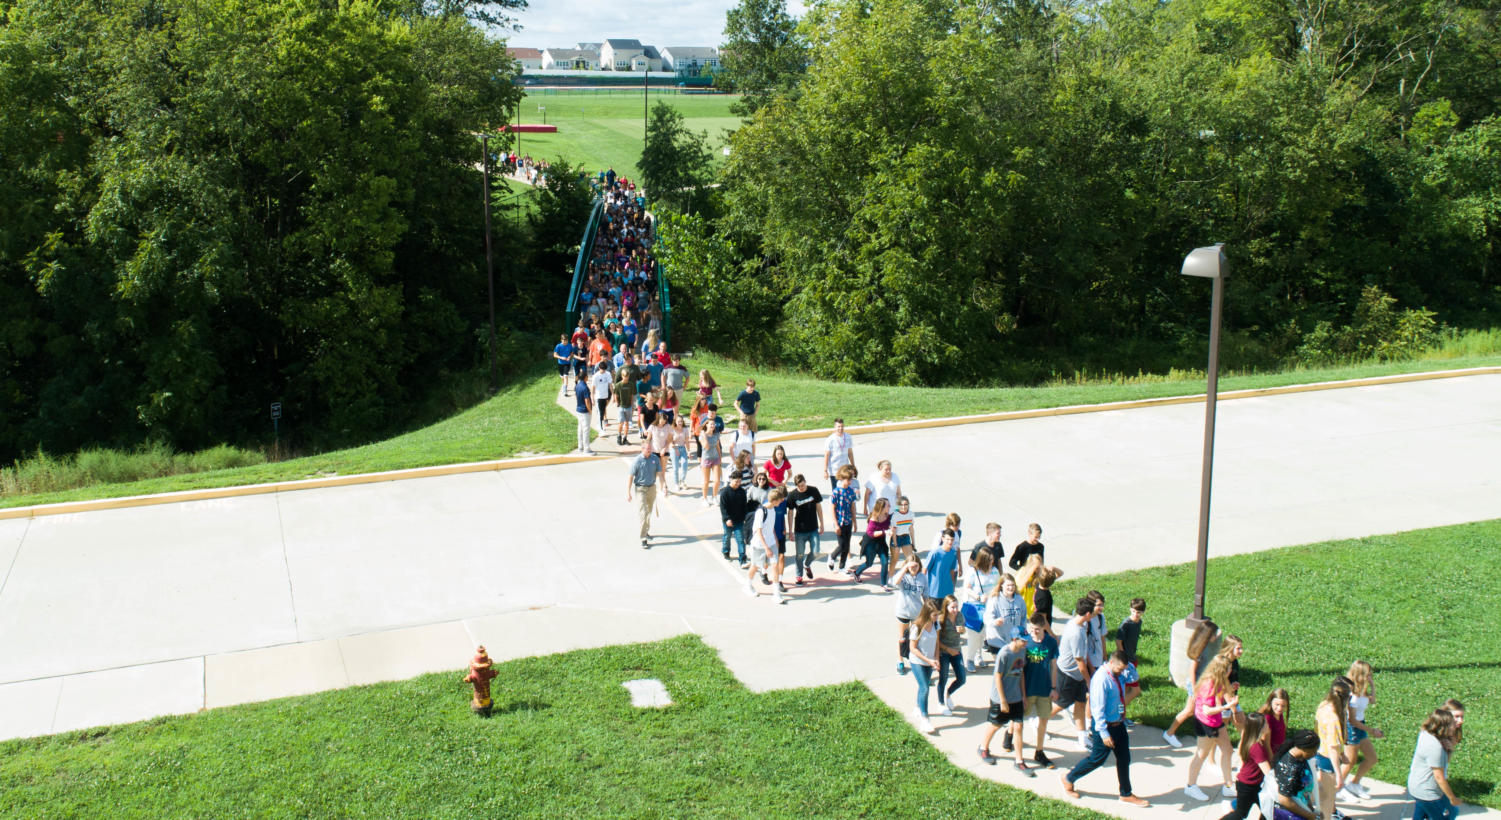 Freshmen+walk+into+a+new+chapter+of+their+lives+as+they+complete+the+bridgewalk+on+the+first+day+of+their+high+school+experience+Aug.+13.+